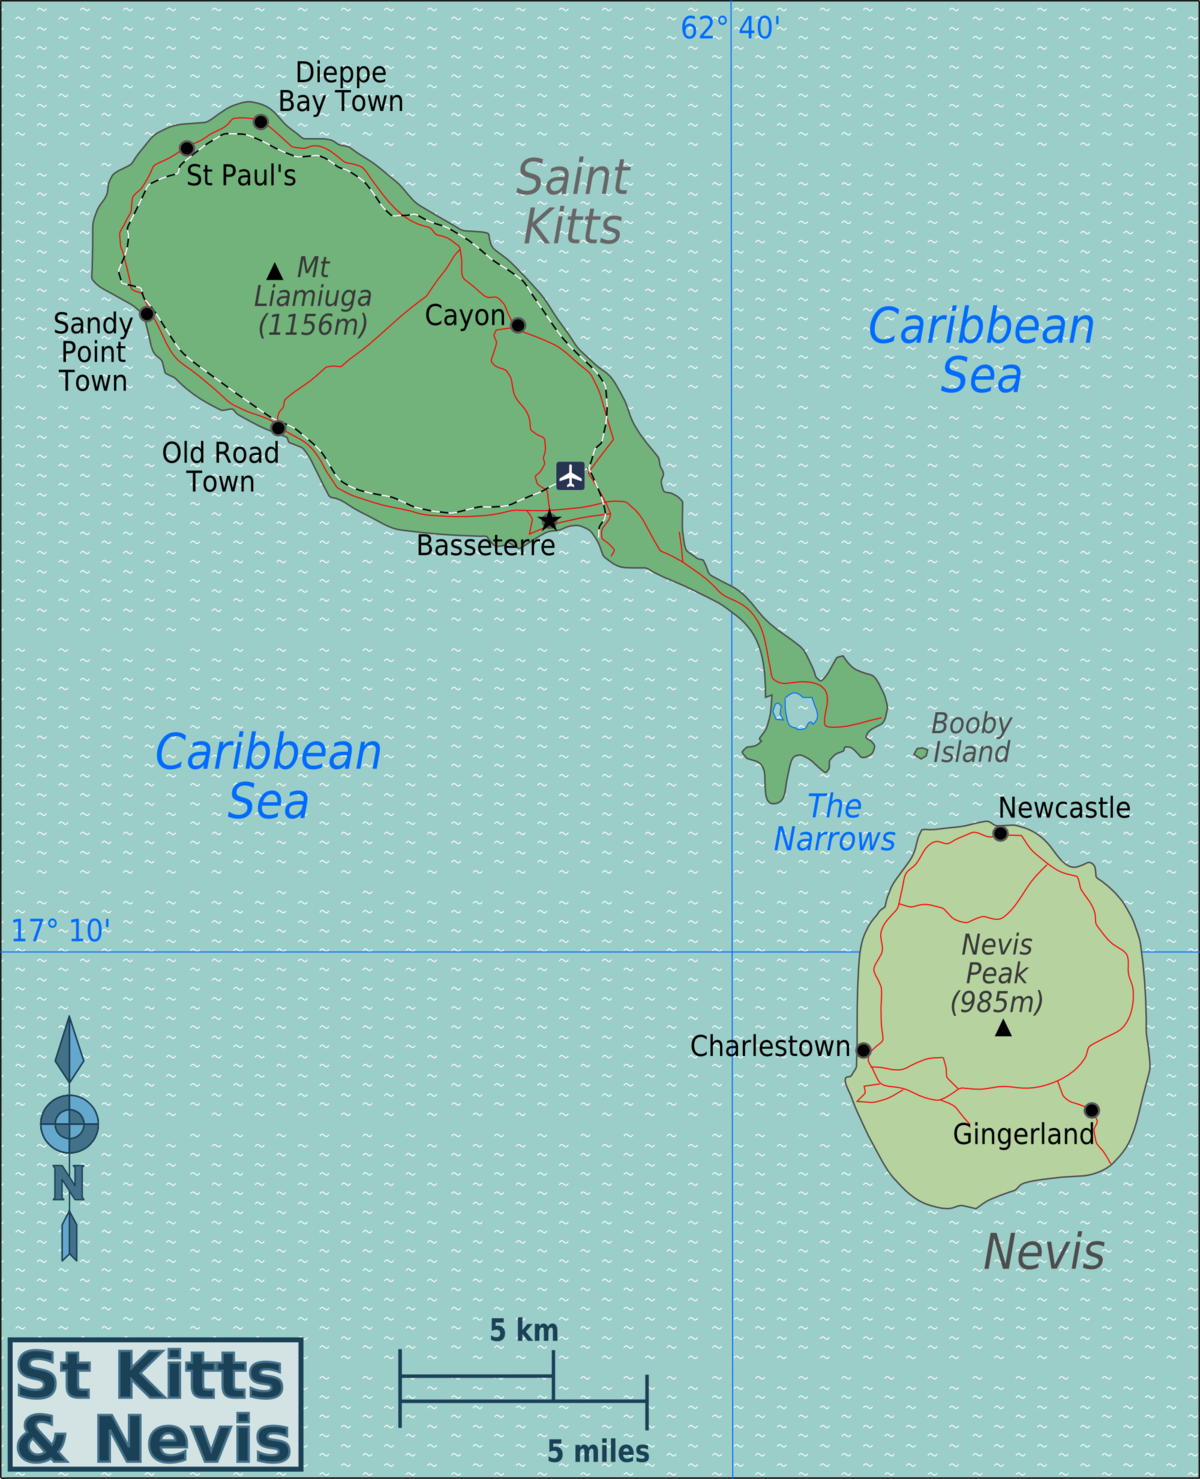 . saint kitts and nevis – travel guide at wikivoyage